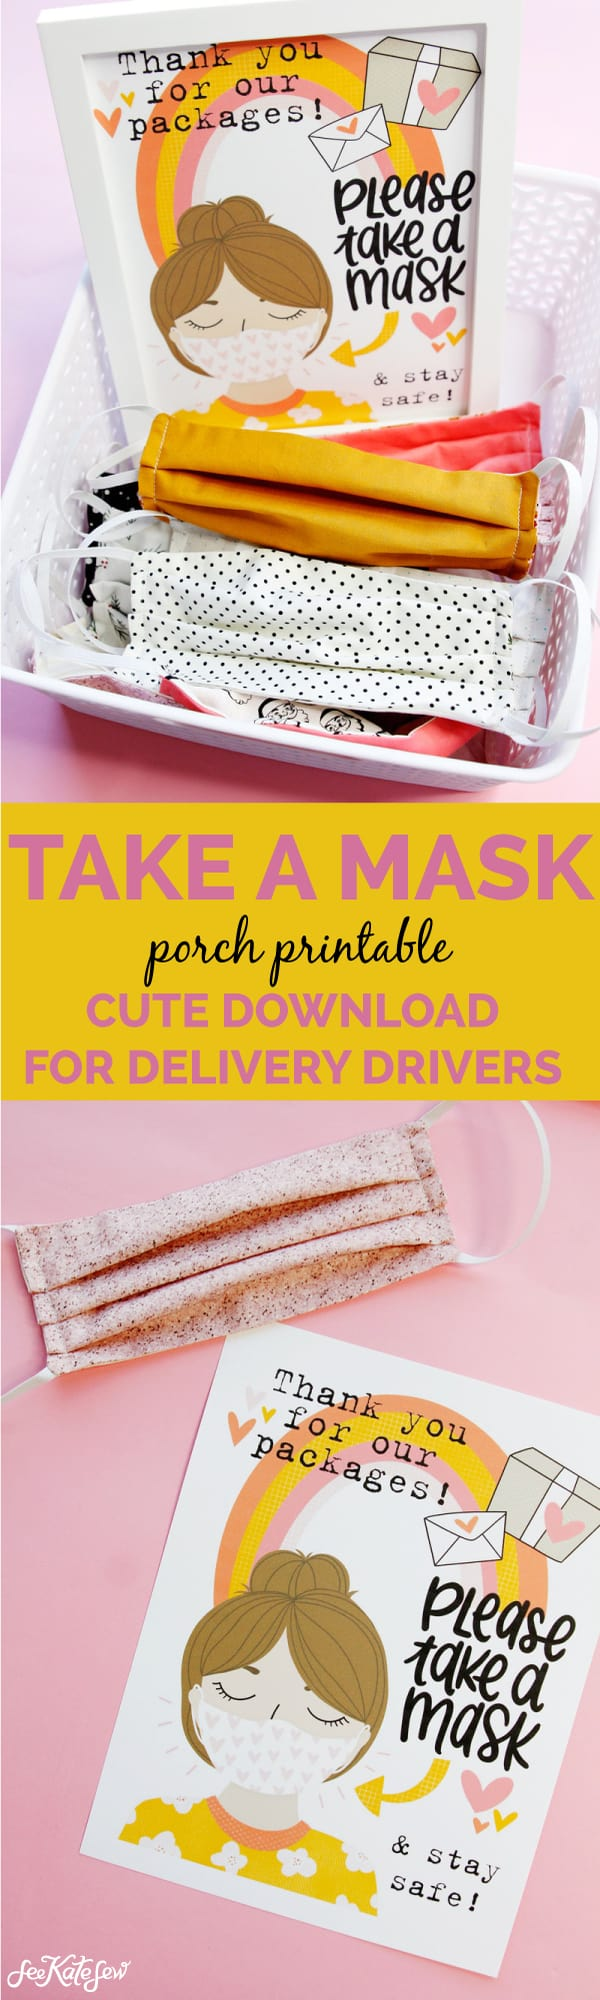 Free Printable - Take a Mask - For USPS, UPS, FEDEX and Amazon delivery drivers